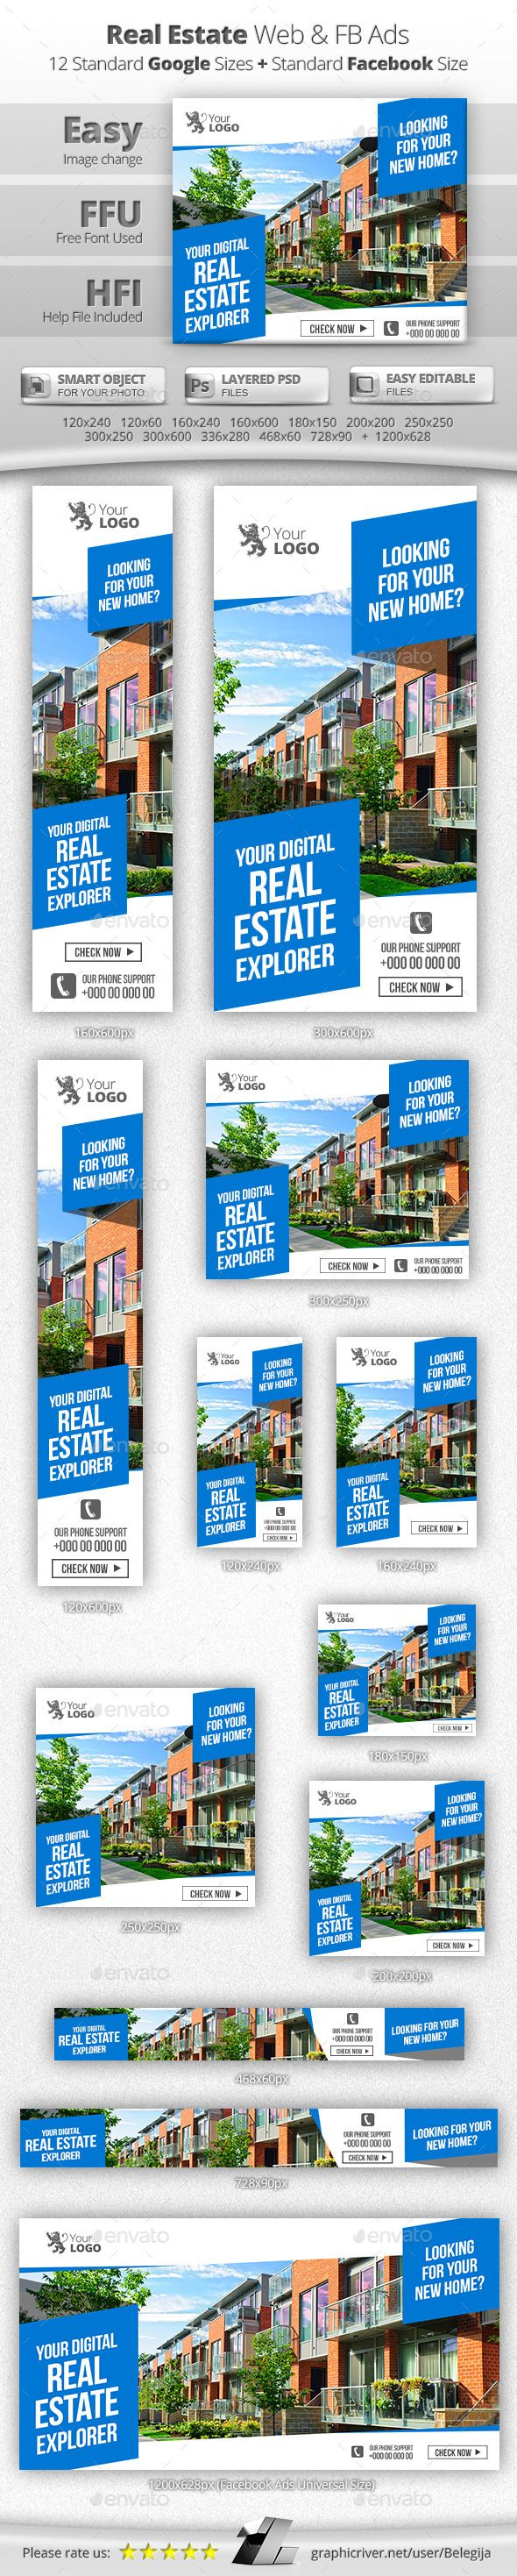 real estate property banner ads design banner design and photoshop real estate web facebook banners